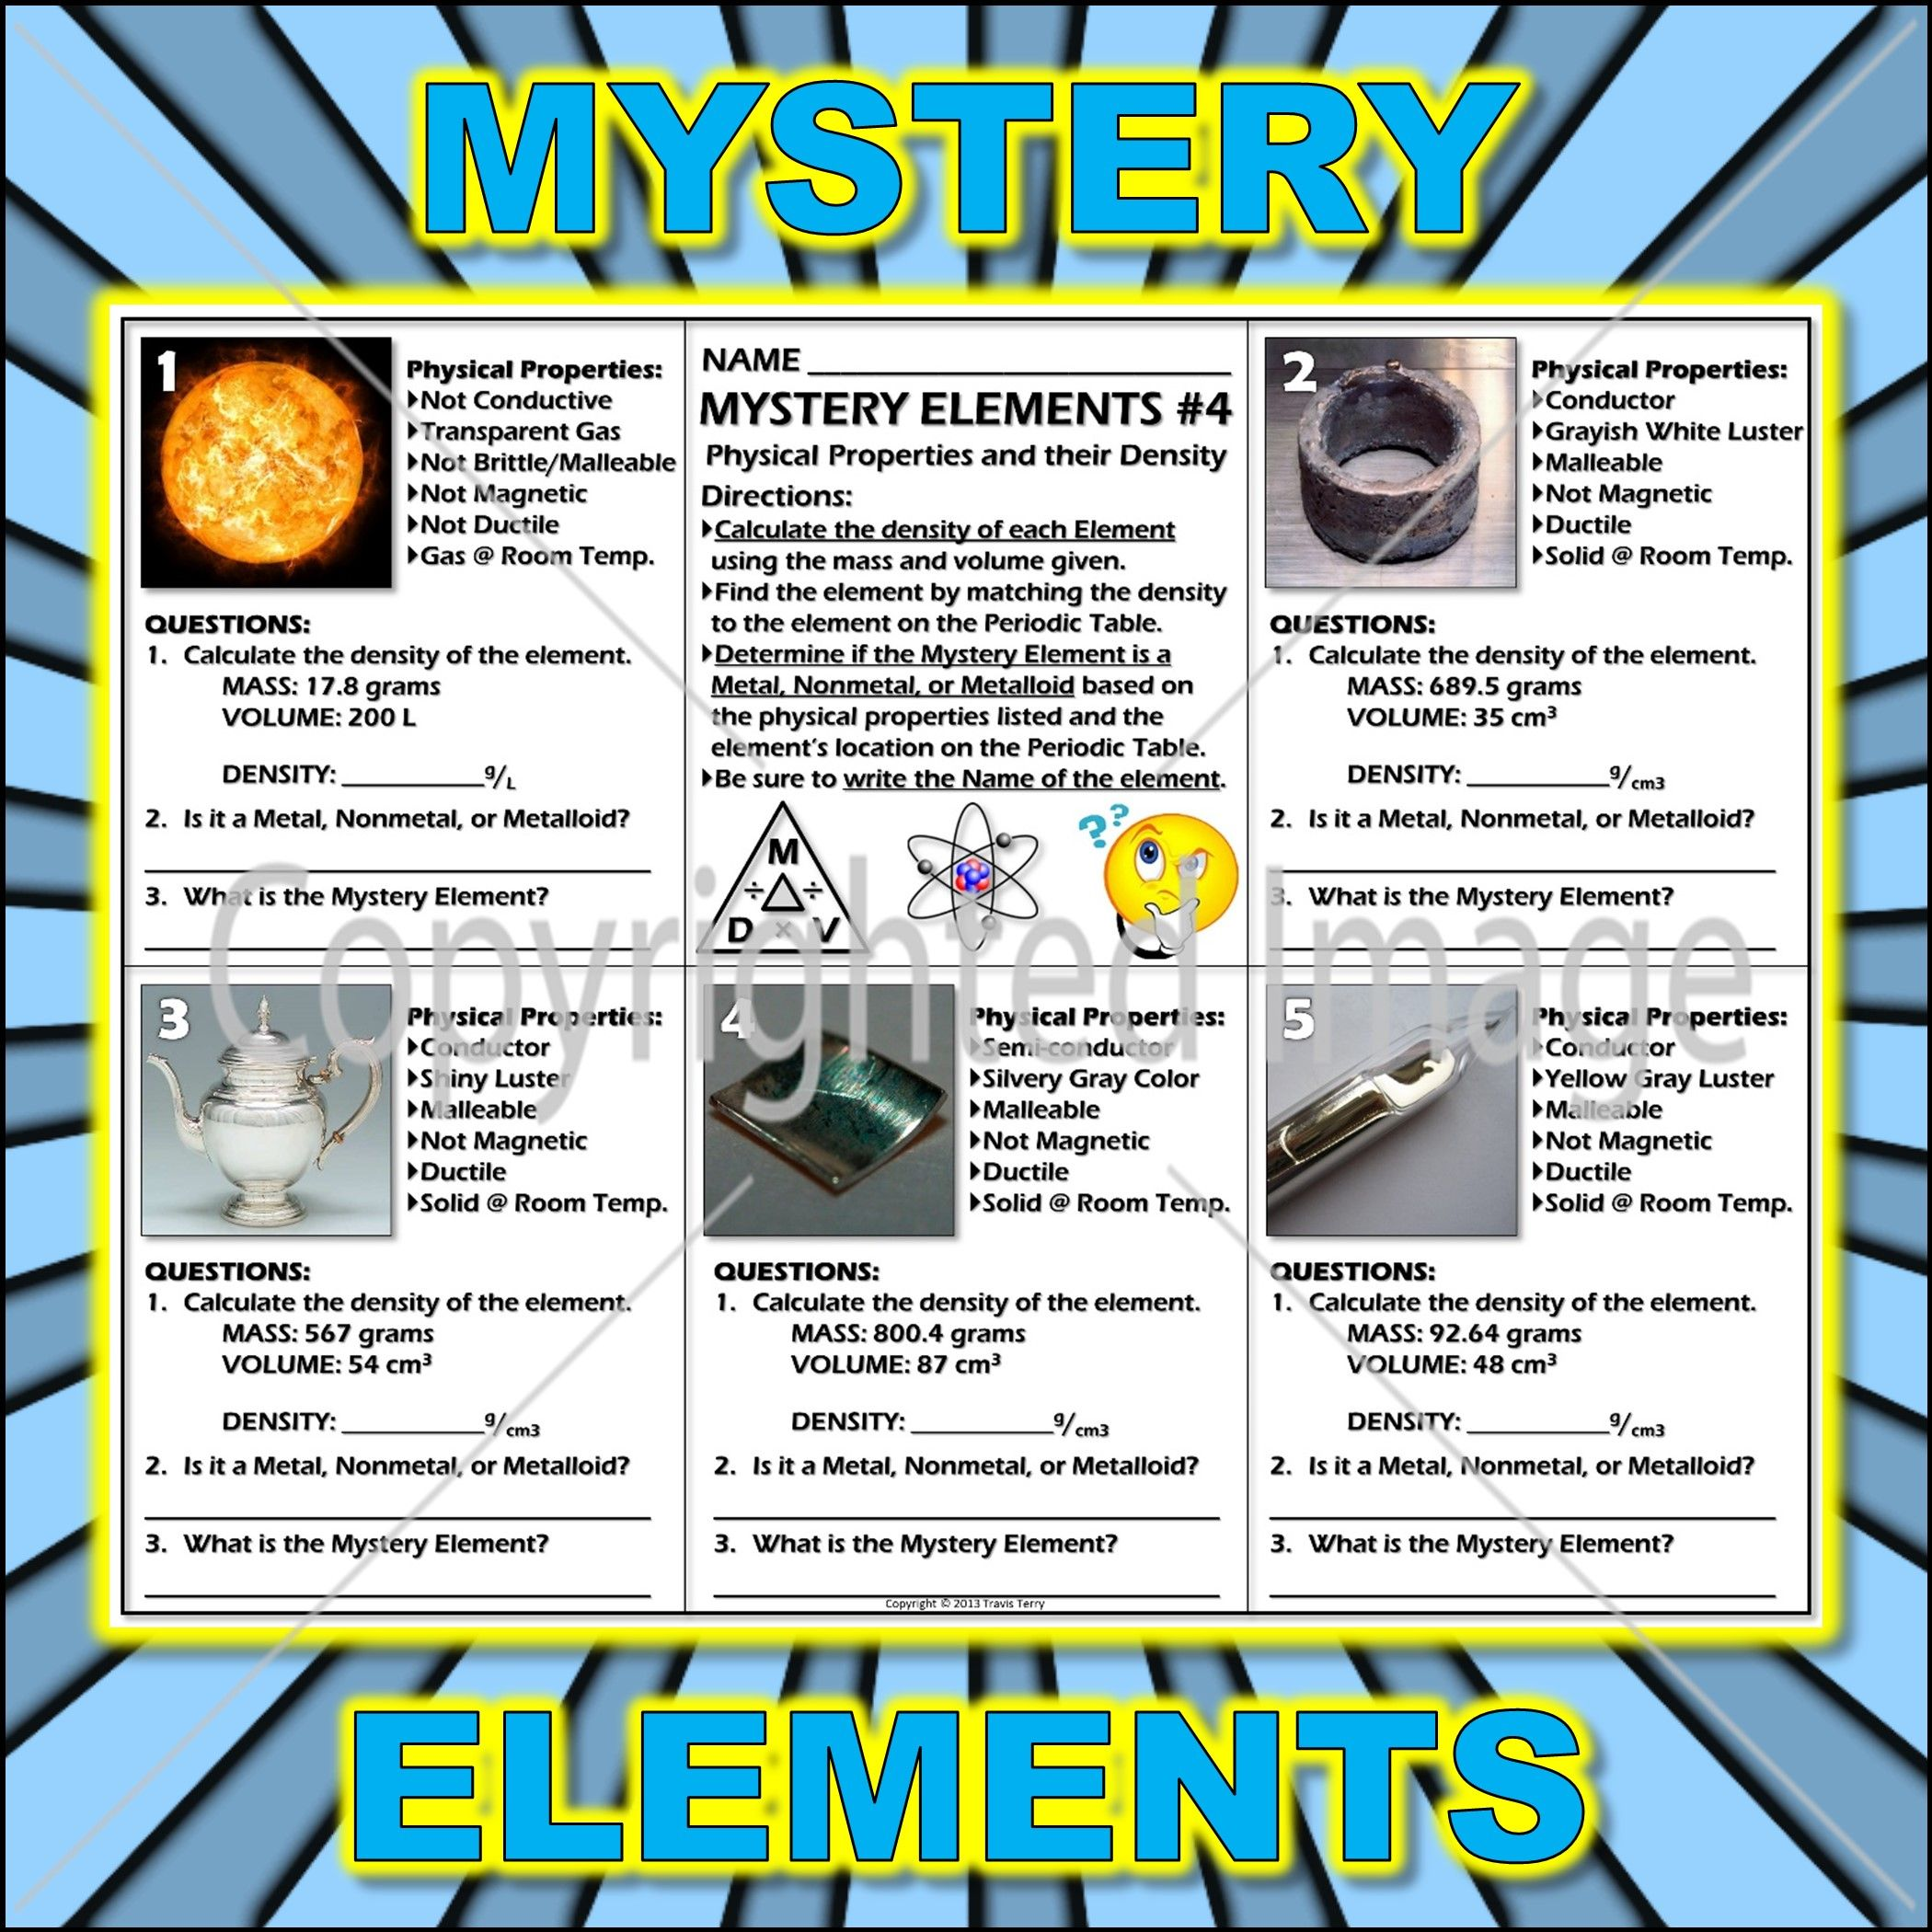 Worksheet mystery elements and their density version 4 periodic kids learning gamestrikefo Image collections